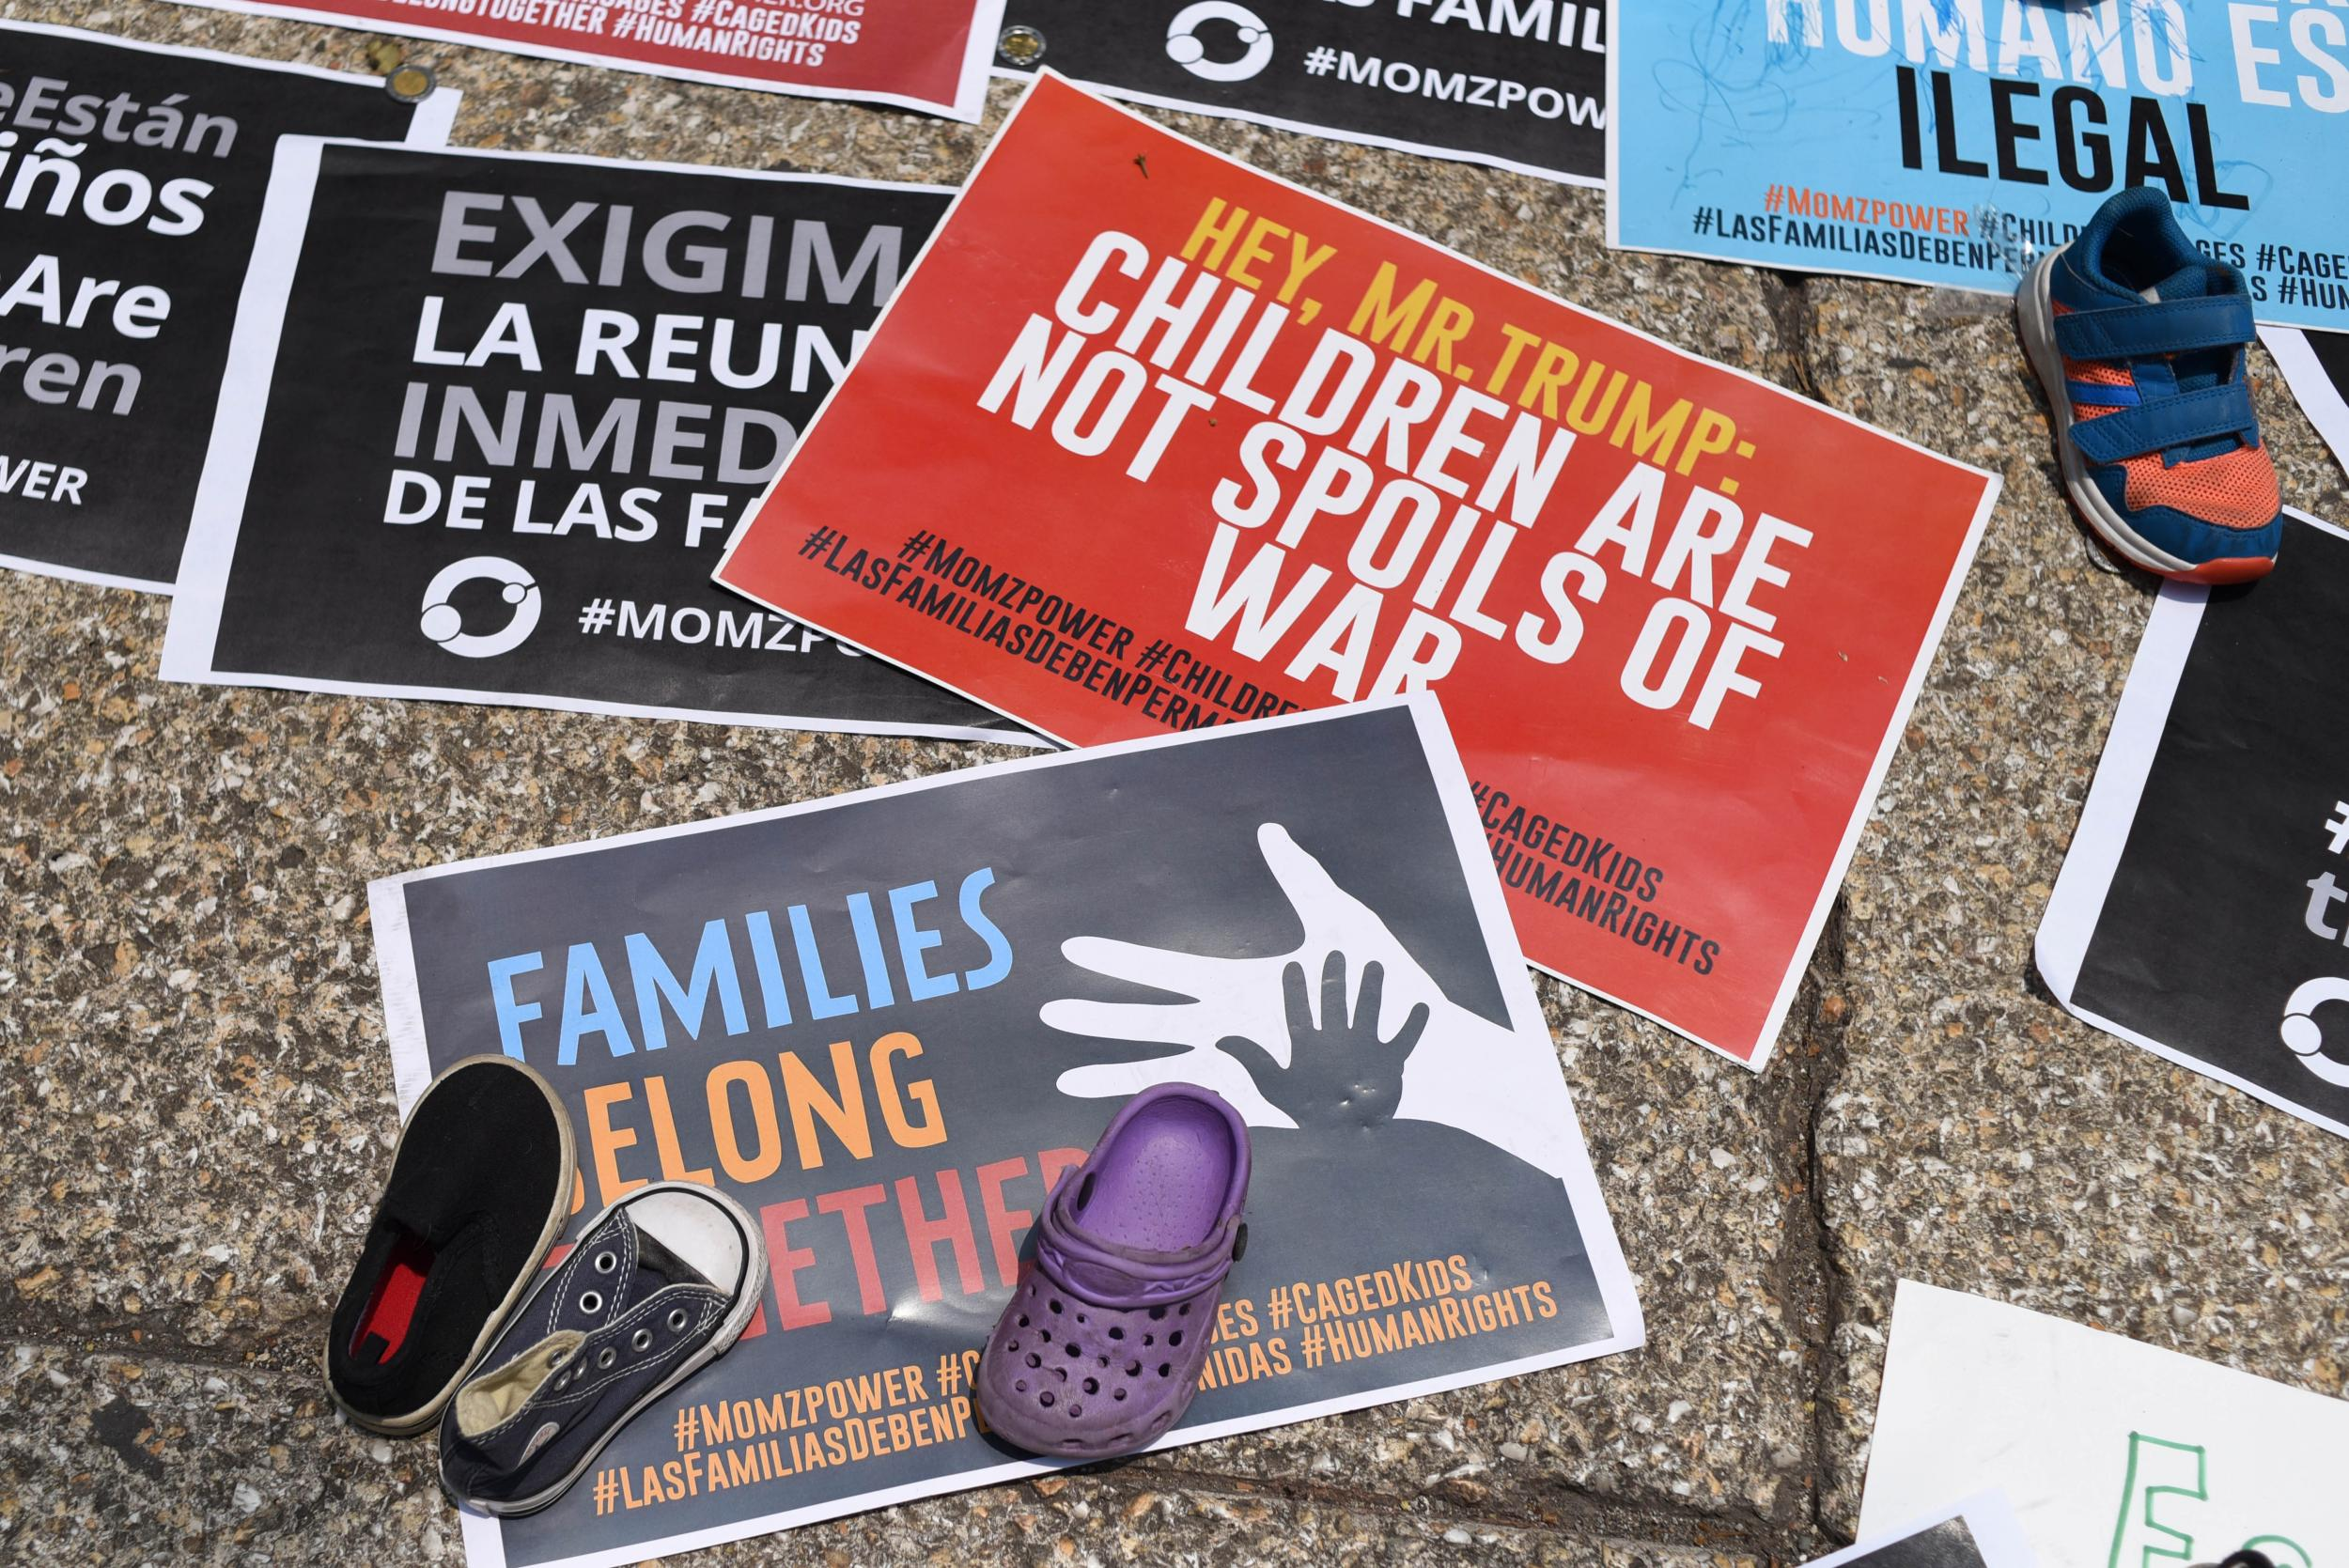 Migrant parents were coerced into signing away family reunification rights, court filing says